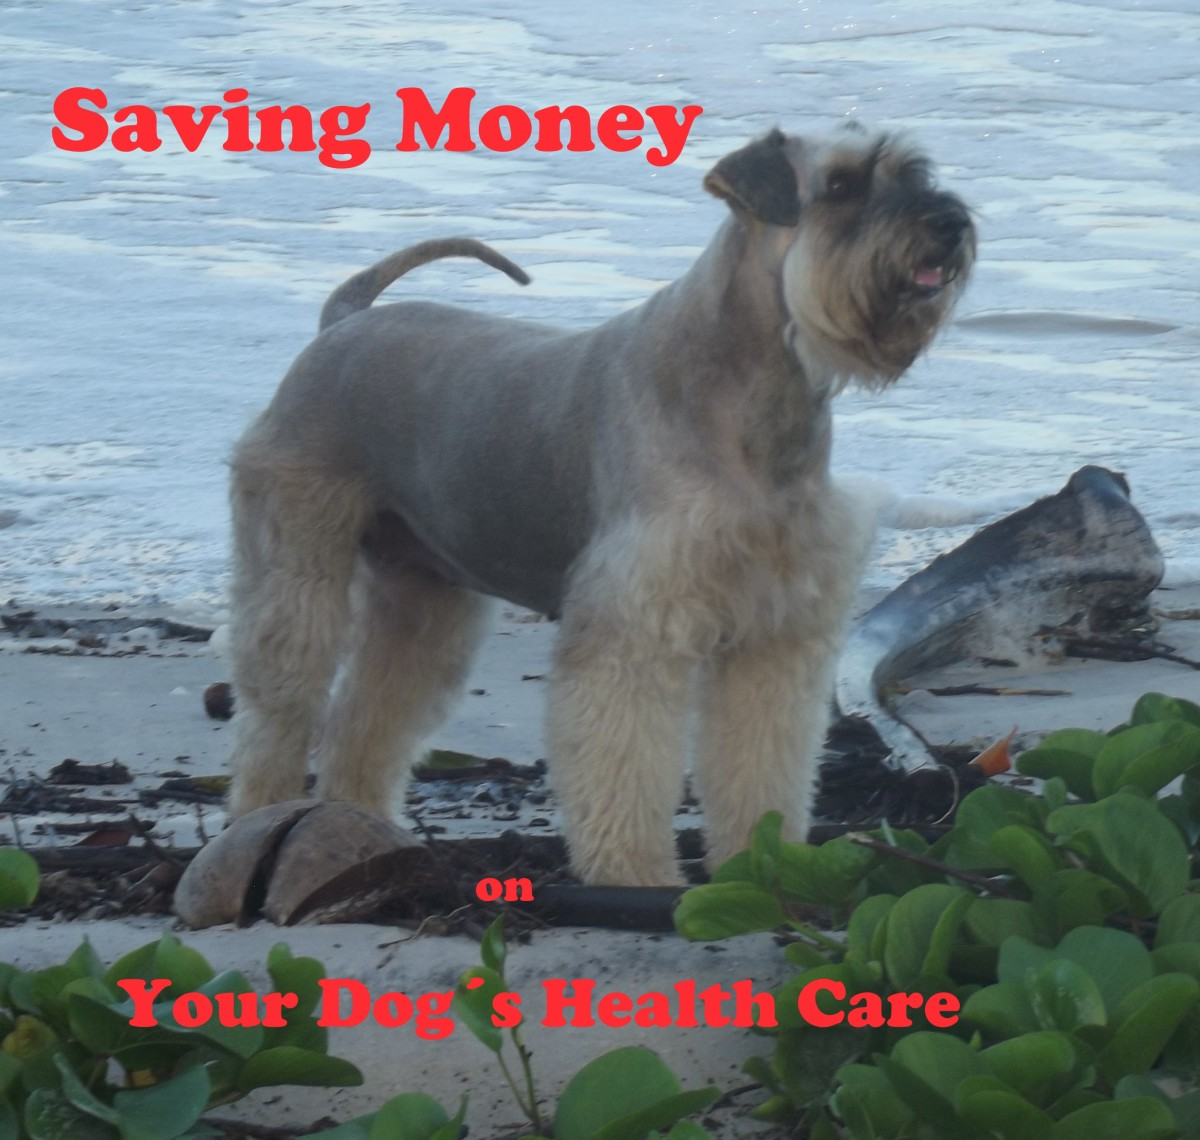 6 Tips to Save Money on Your Dog's Health Care